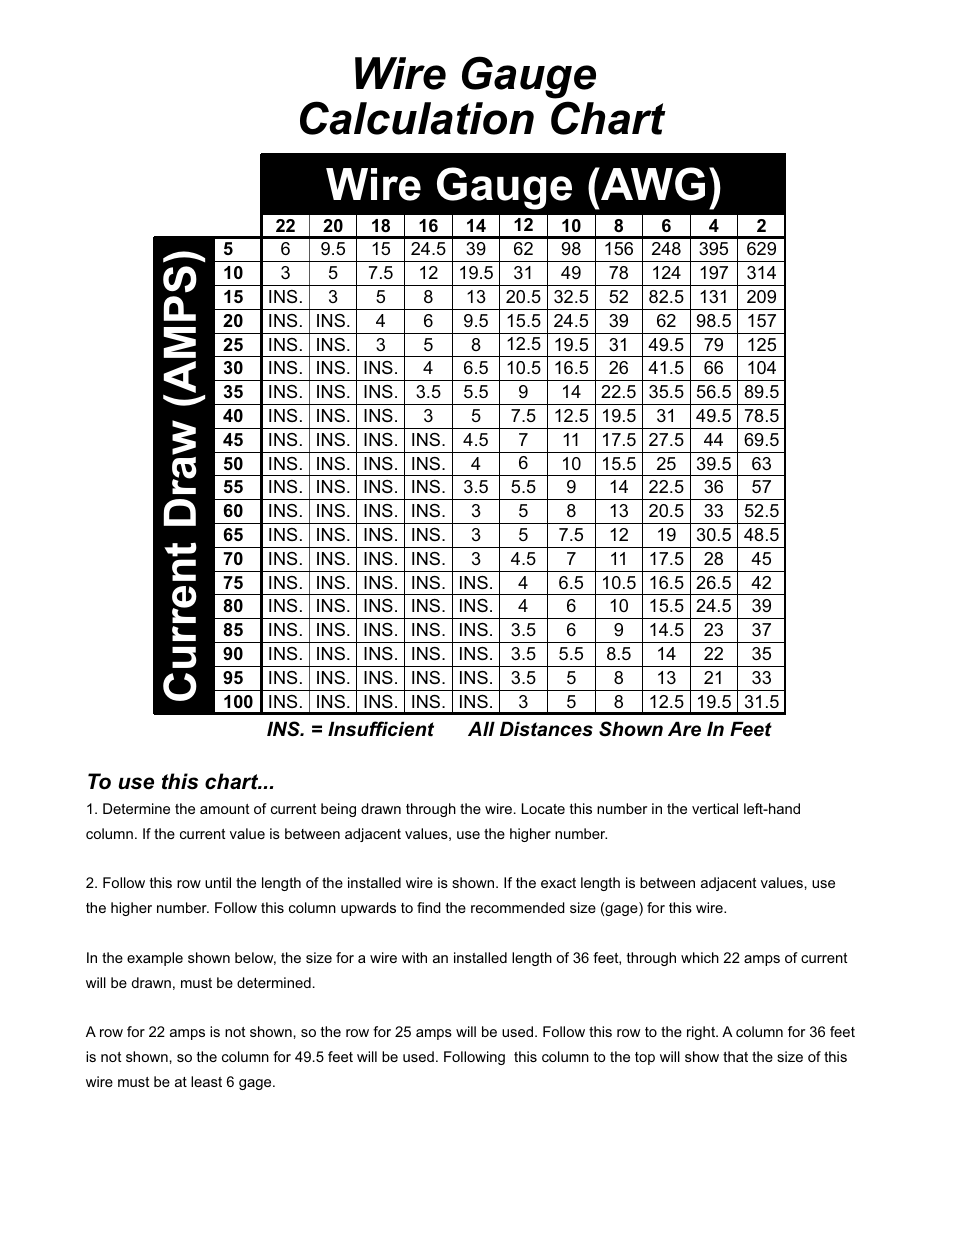 Current draw amps wire gauge calculation chart wire gauge awg current draw amps wire gauge calculation chart wire gauge awg greentooth Image collections